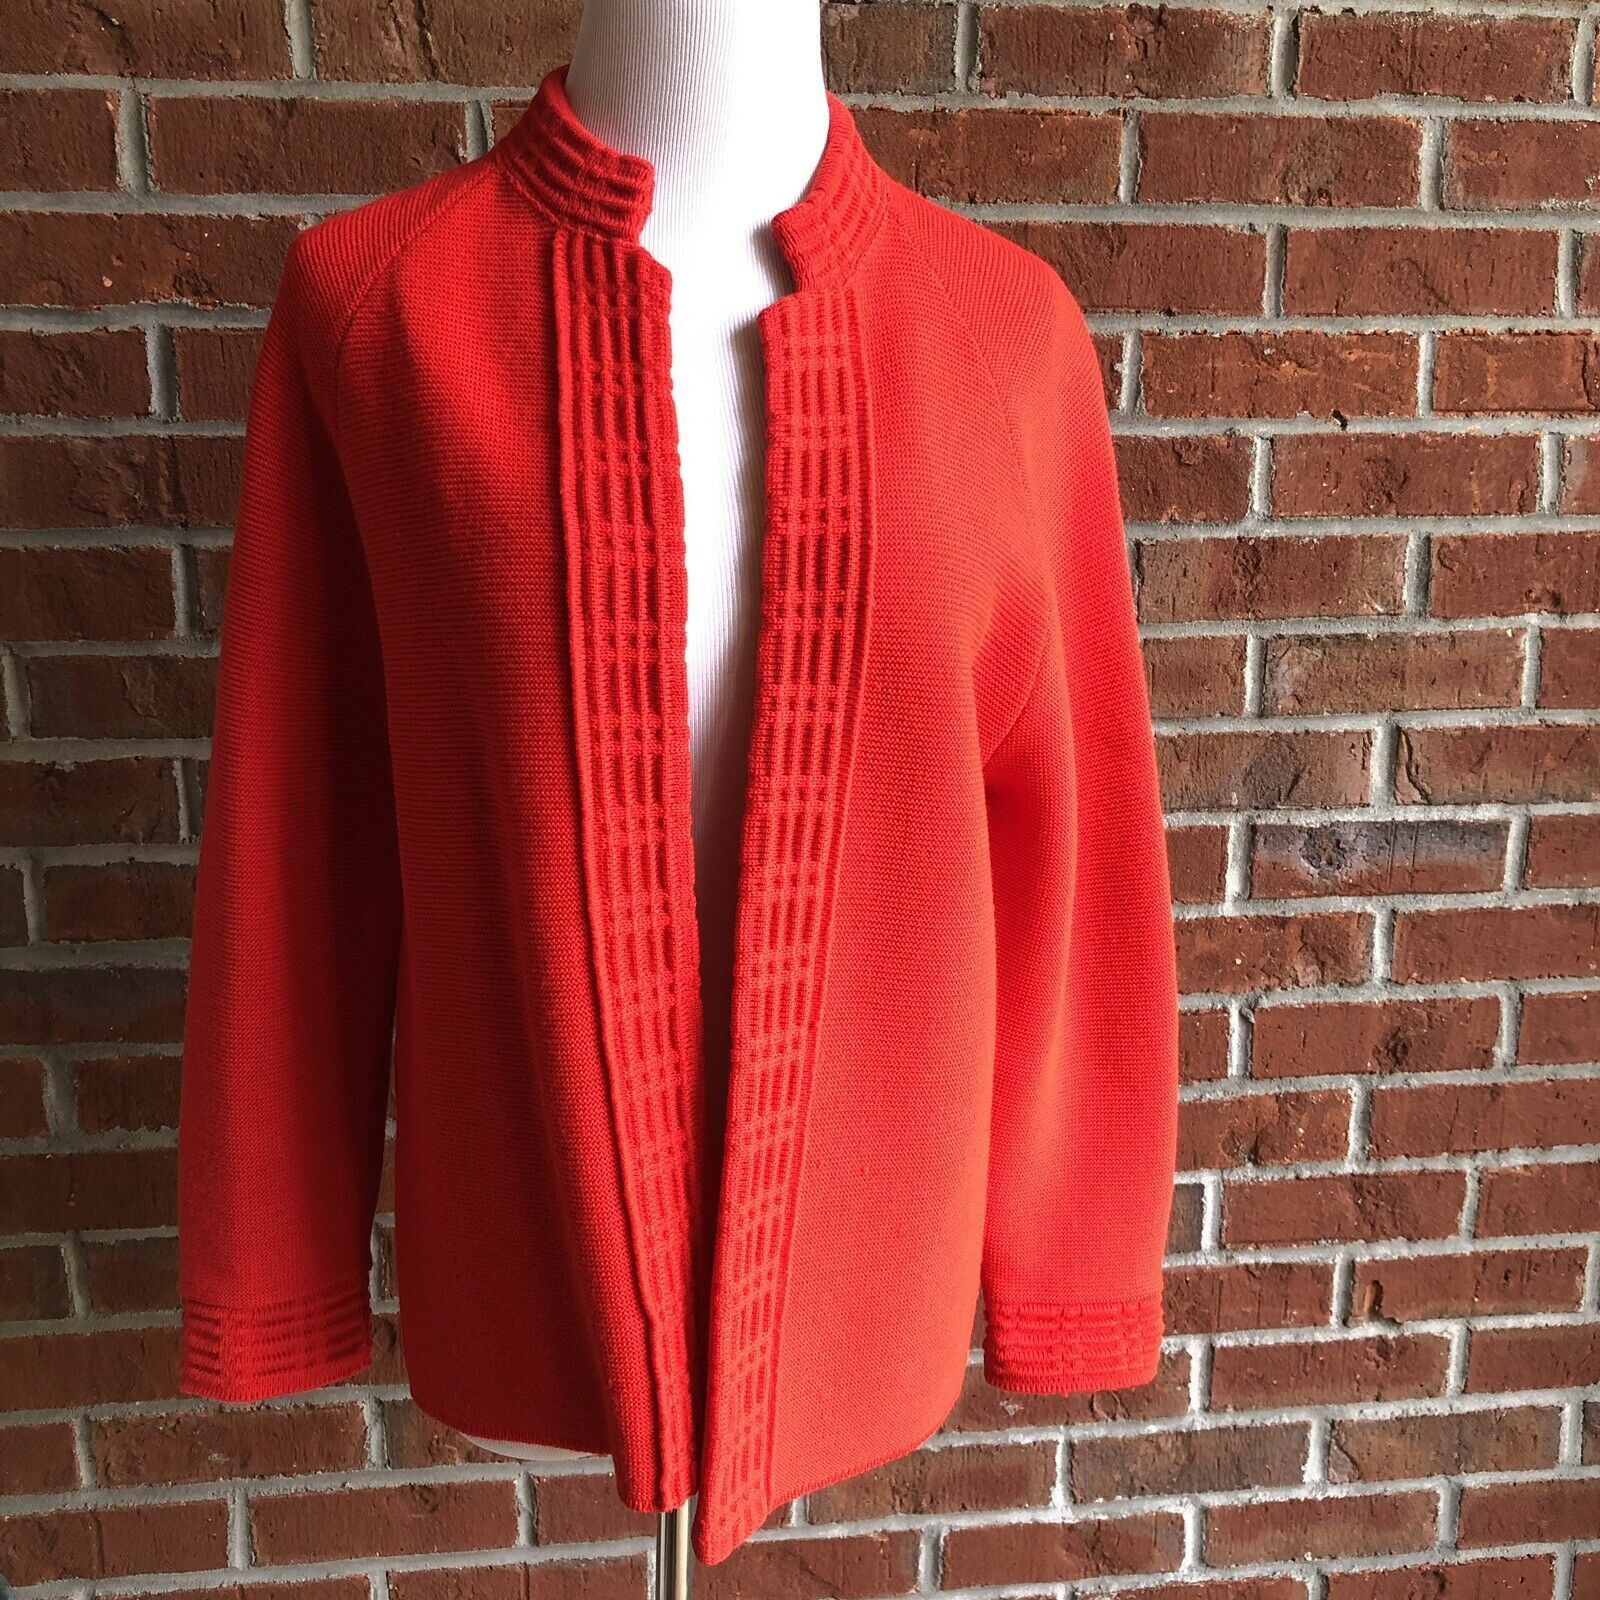 Primary image for Hedy of California Vintage Mandarin Collar Cardigan - M/L (see measurements)